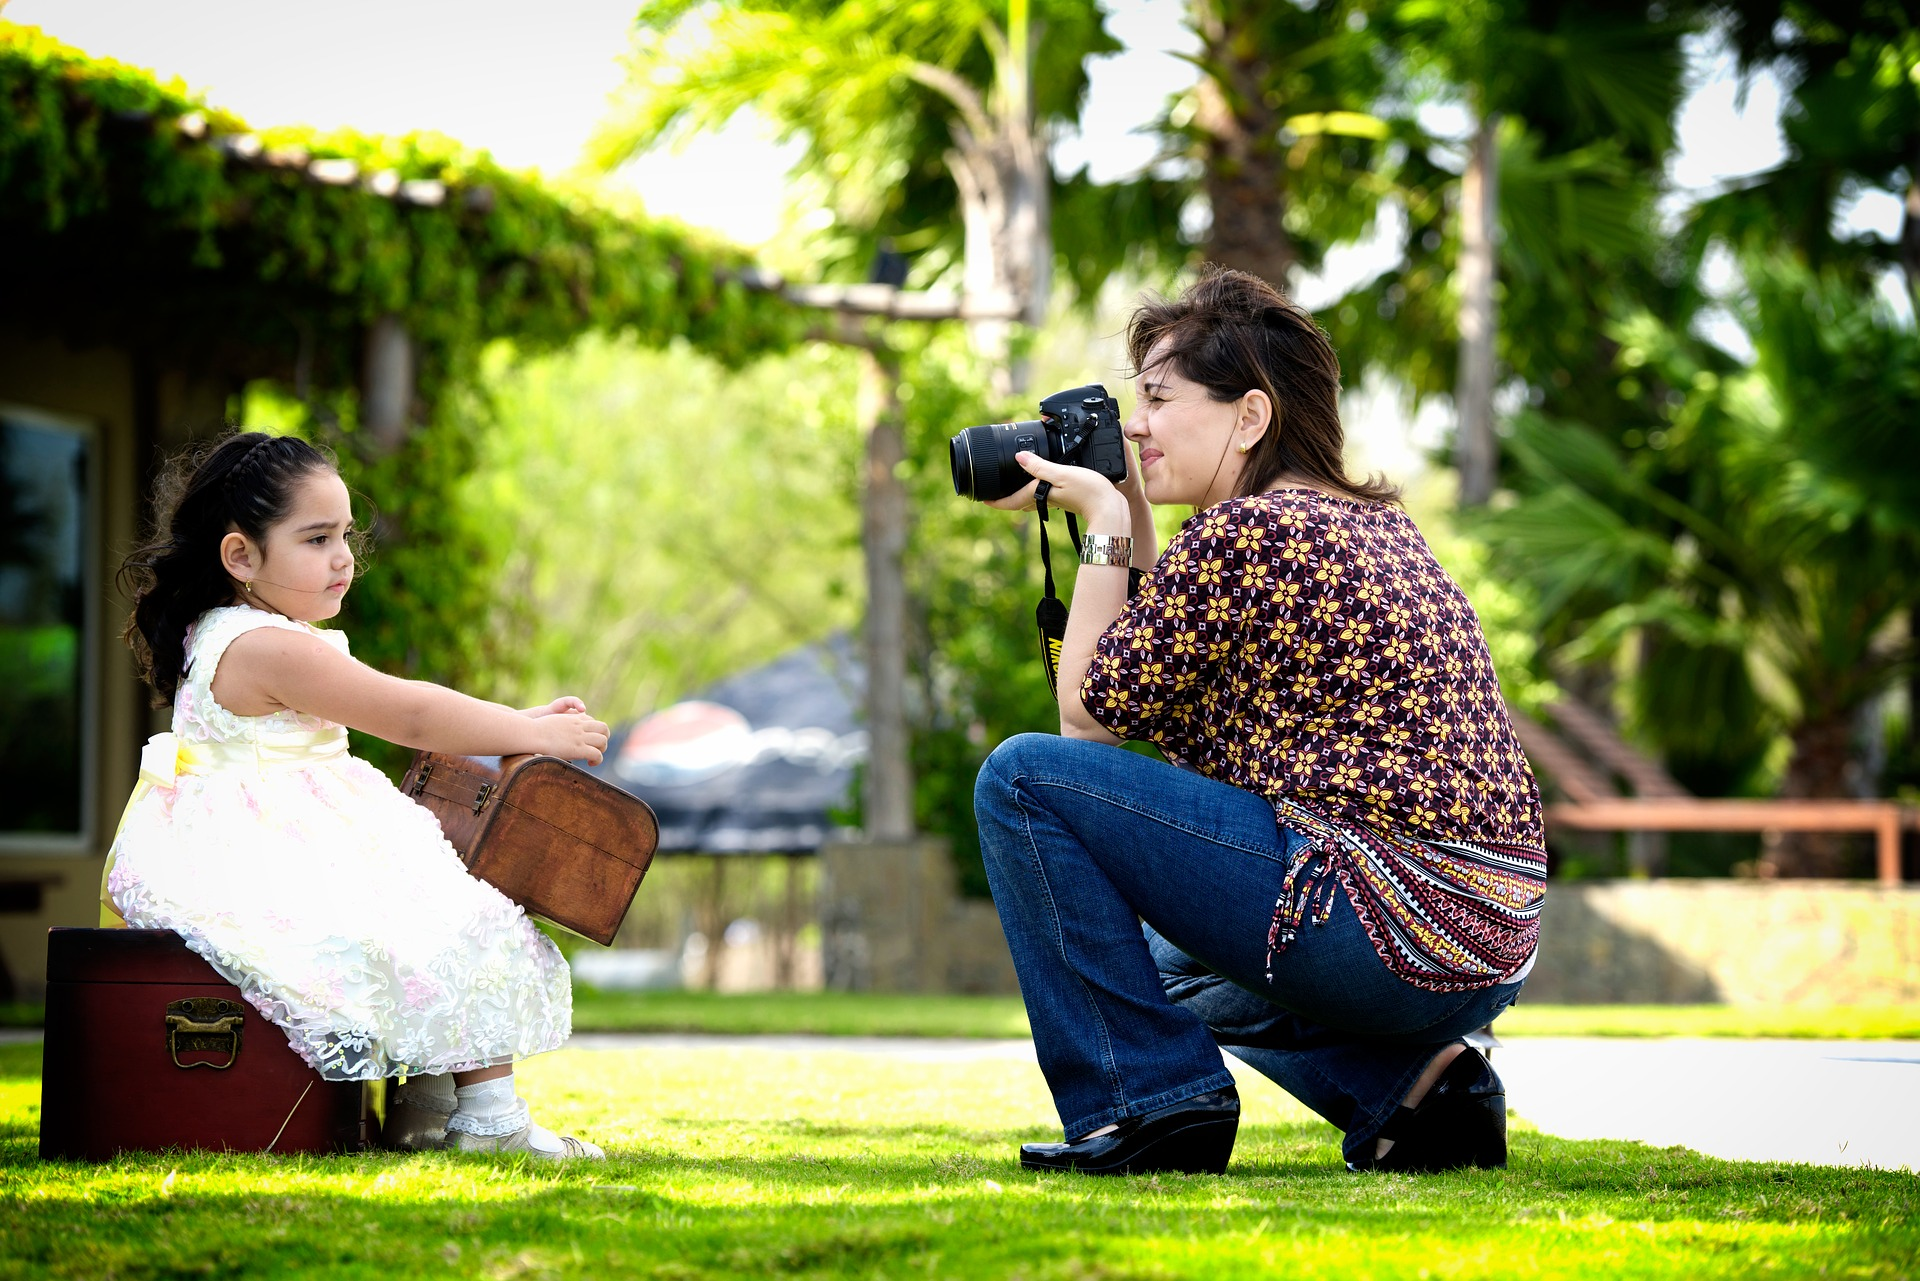 Woman with camera taking pictures of little girl